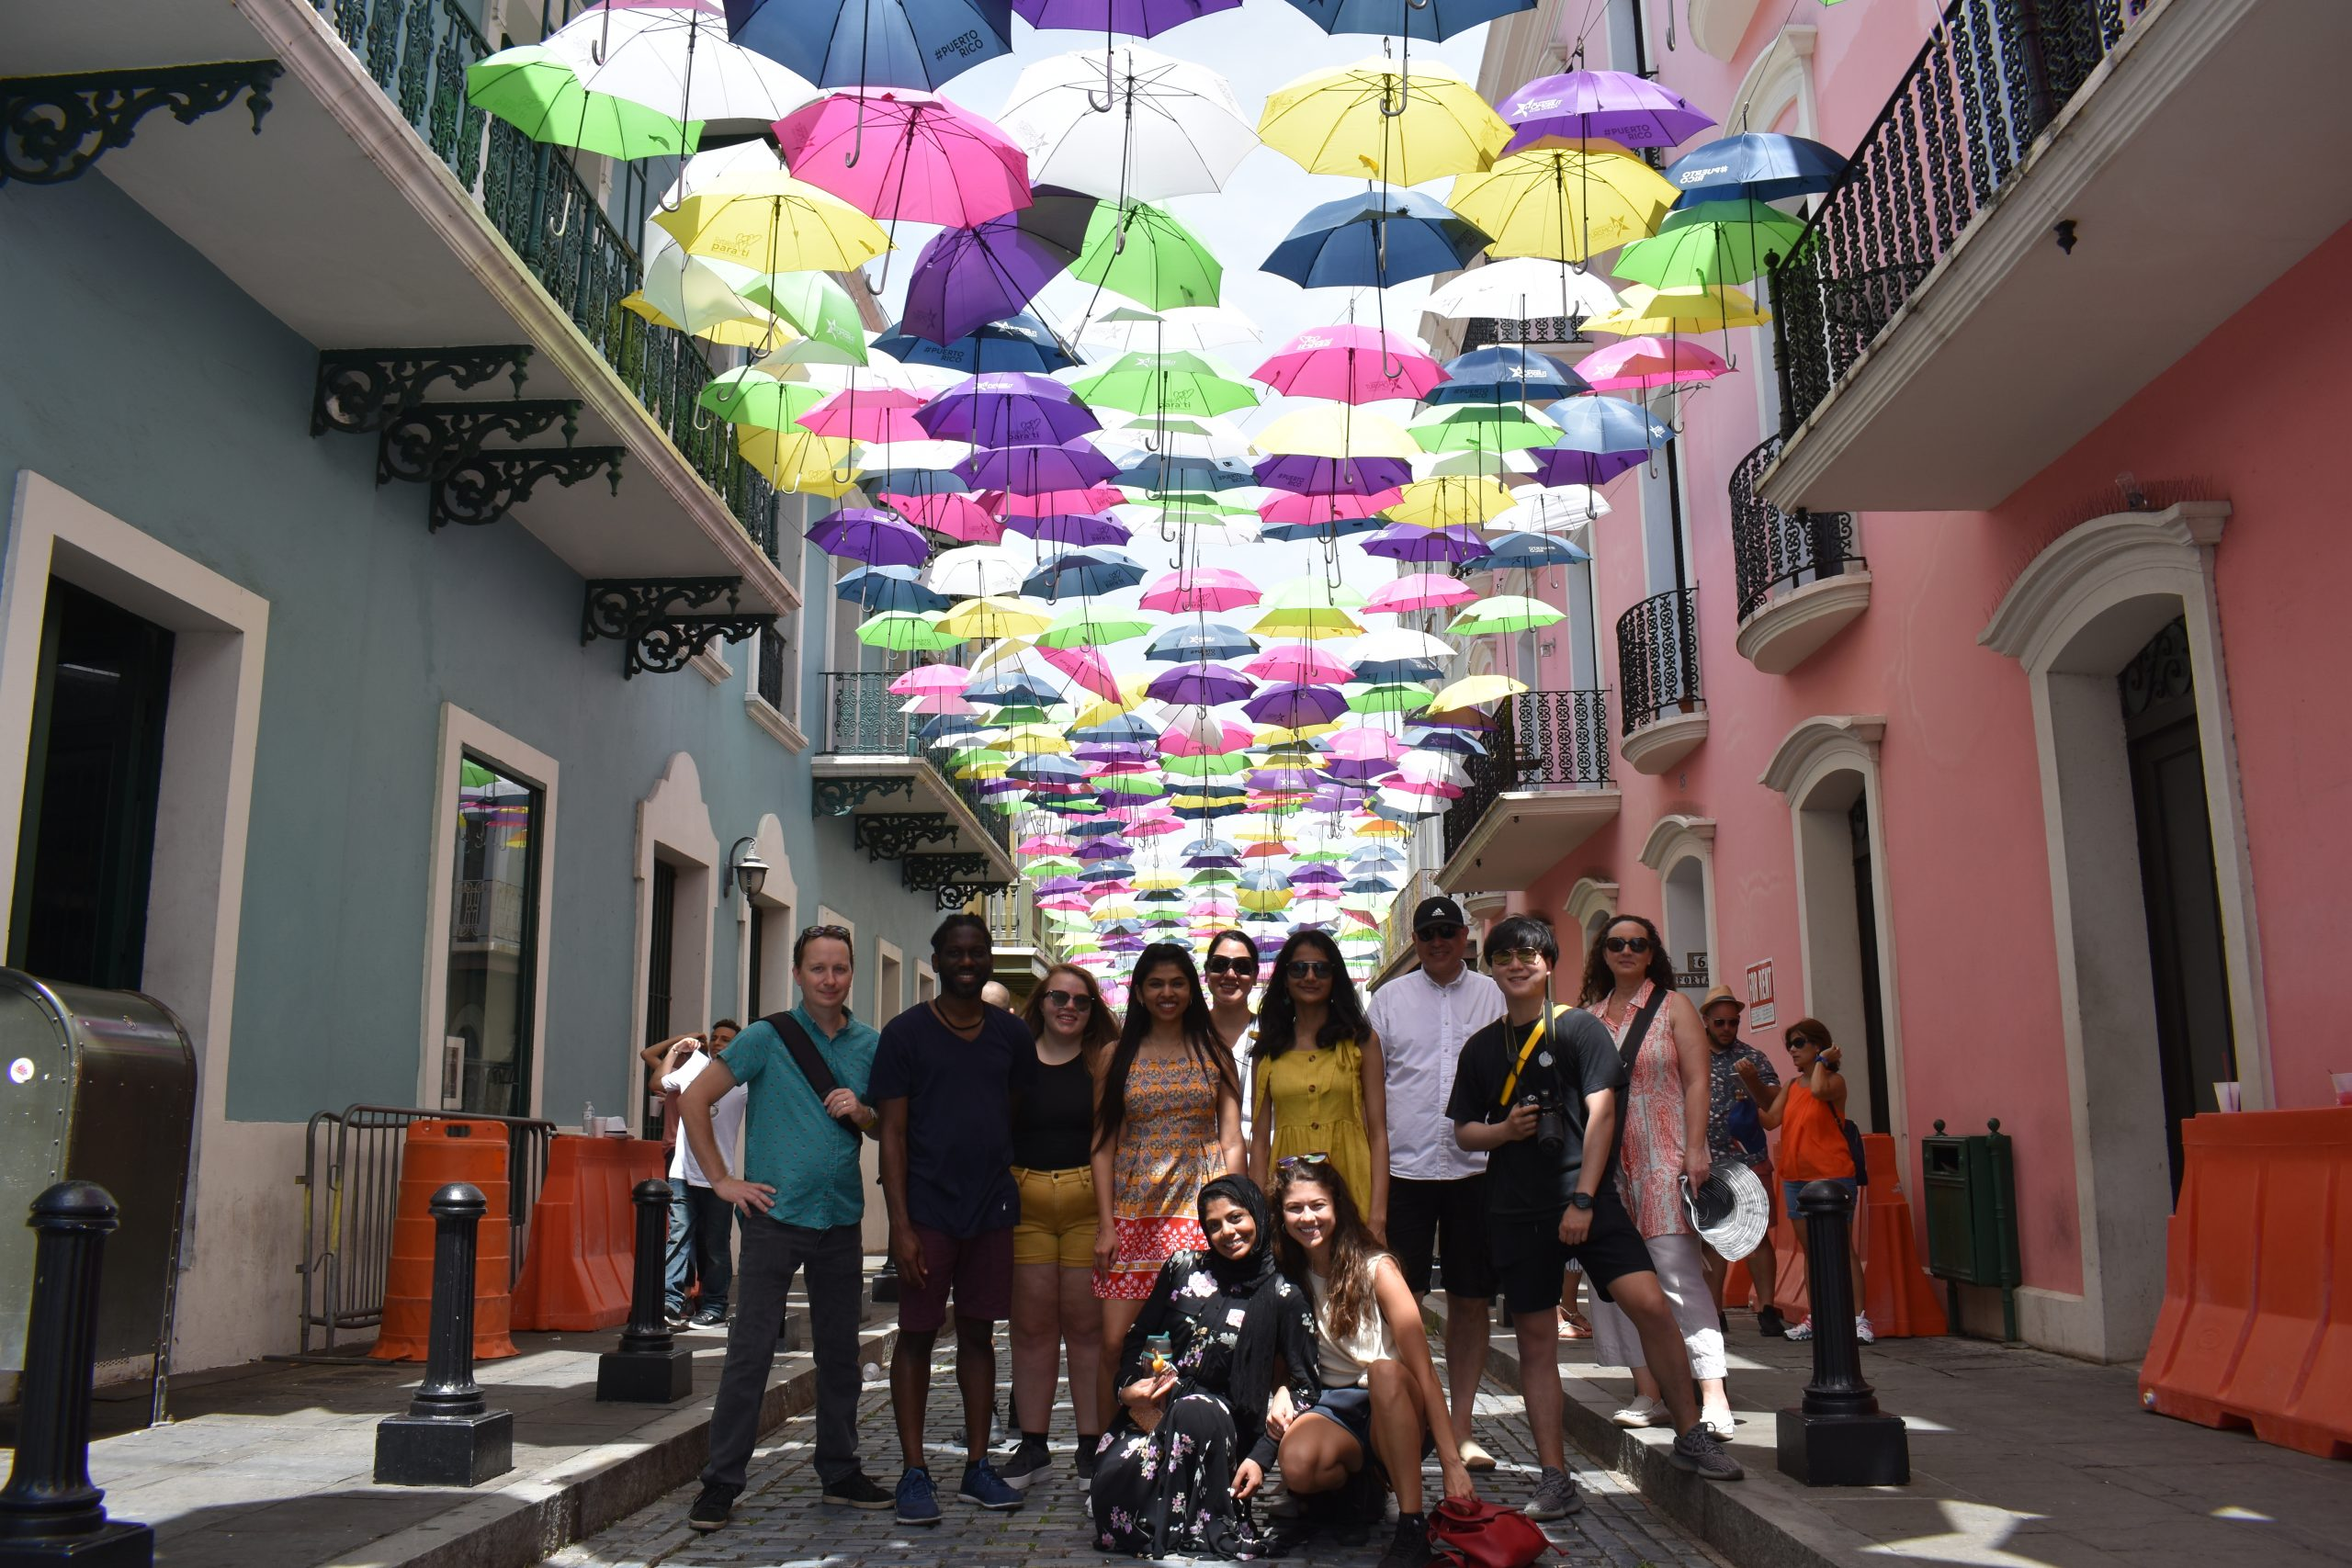 Iowa State University urban design studio students and faculty visit the colorful umbrella installation on Fortaleza Street in Old San Juan, Puerto Rico